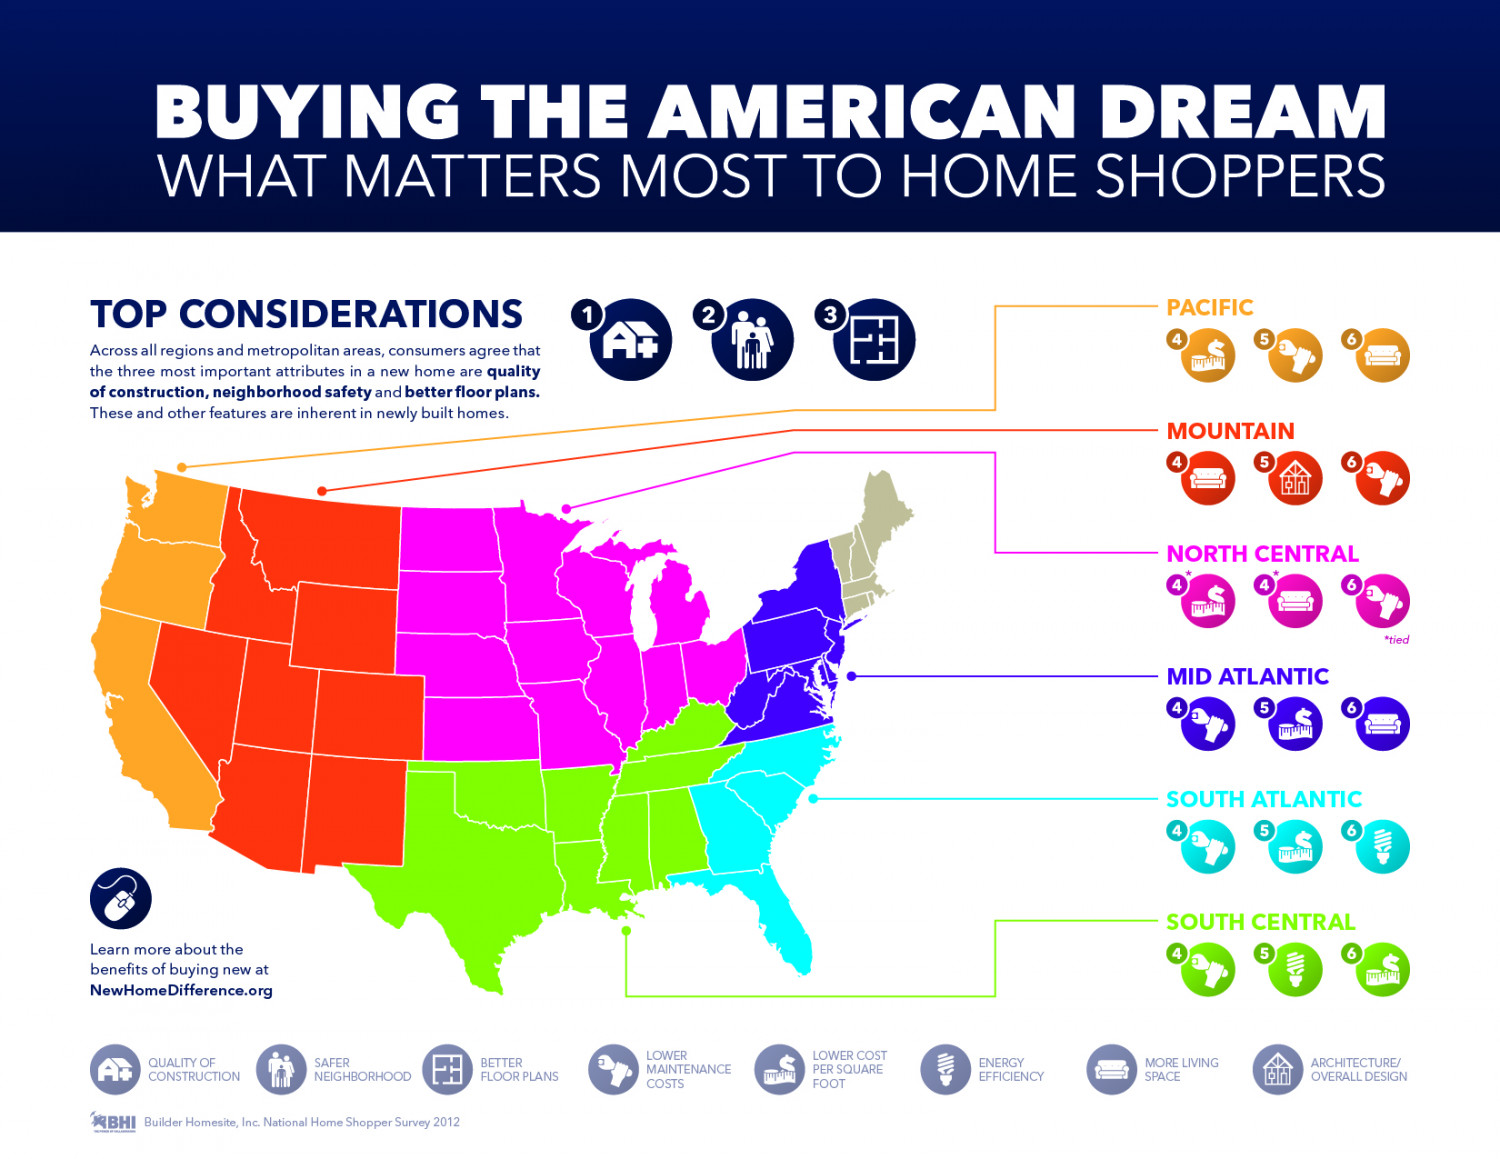 Buying The American Dream: What Matters Most to Home Shoppers Infographic